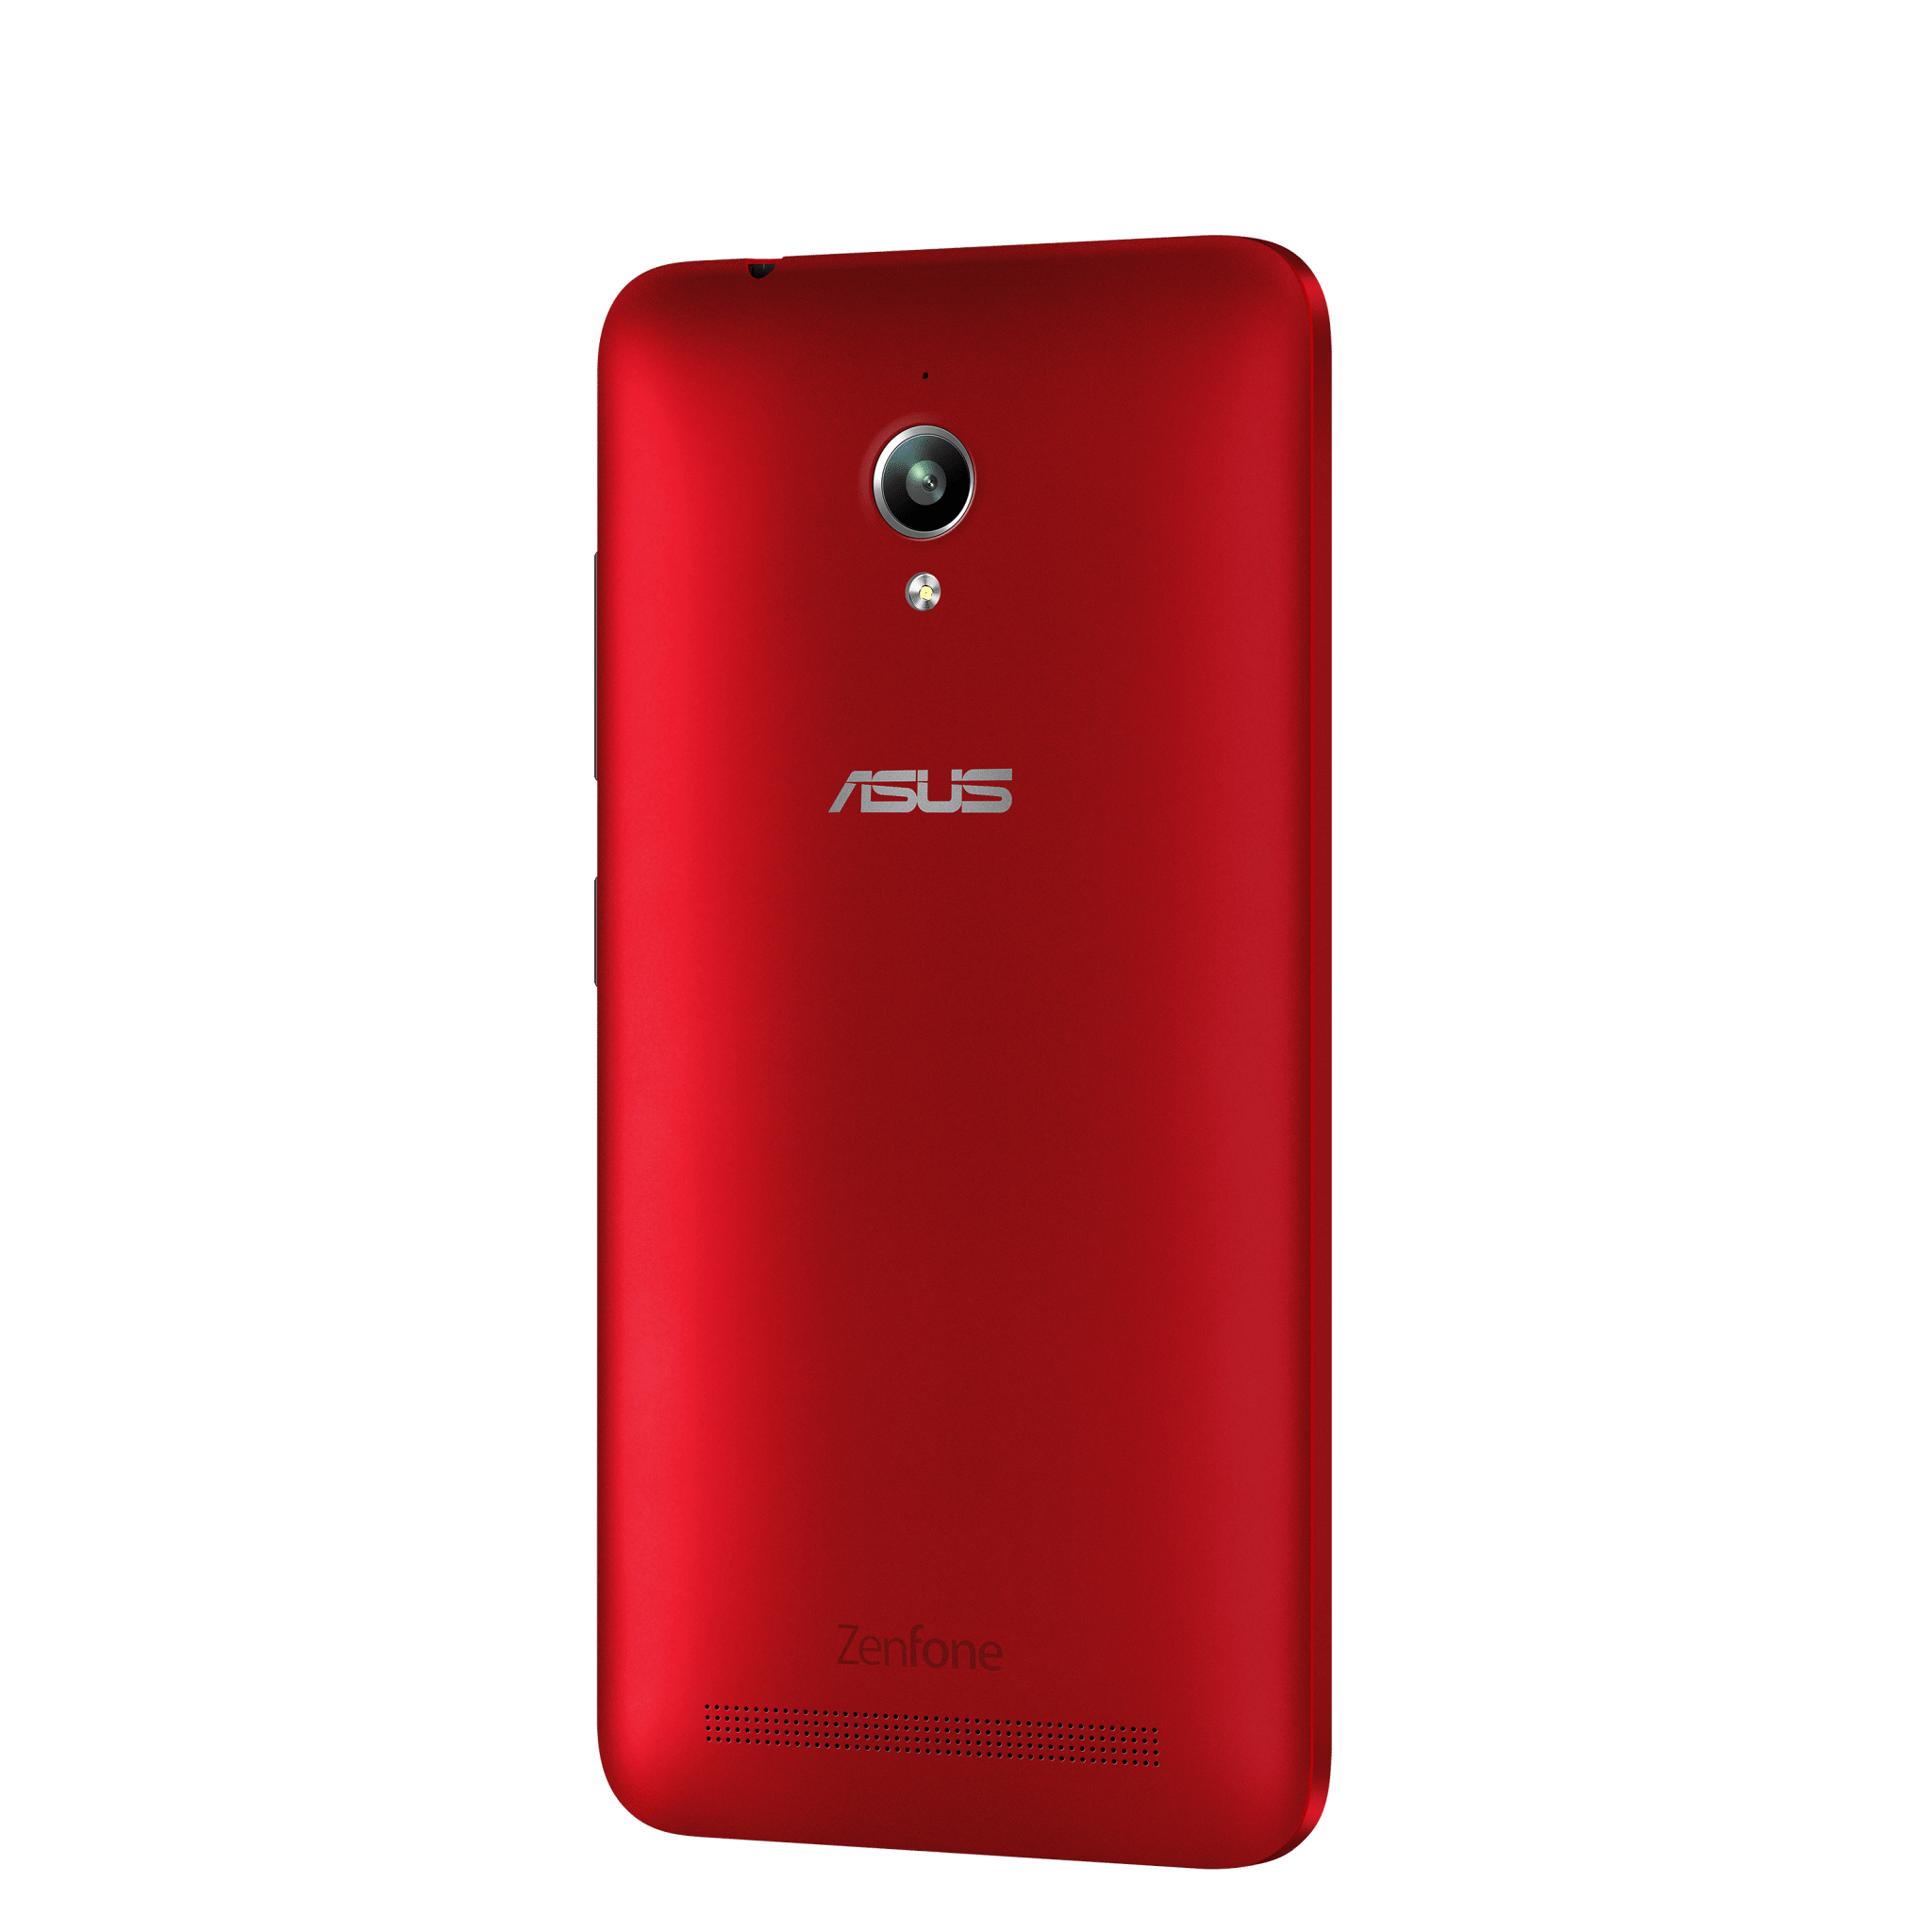 Zc500tg red  12